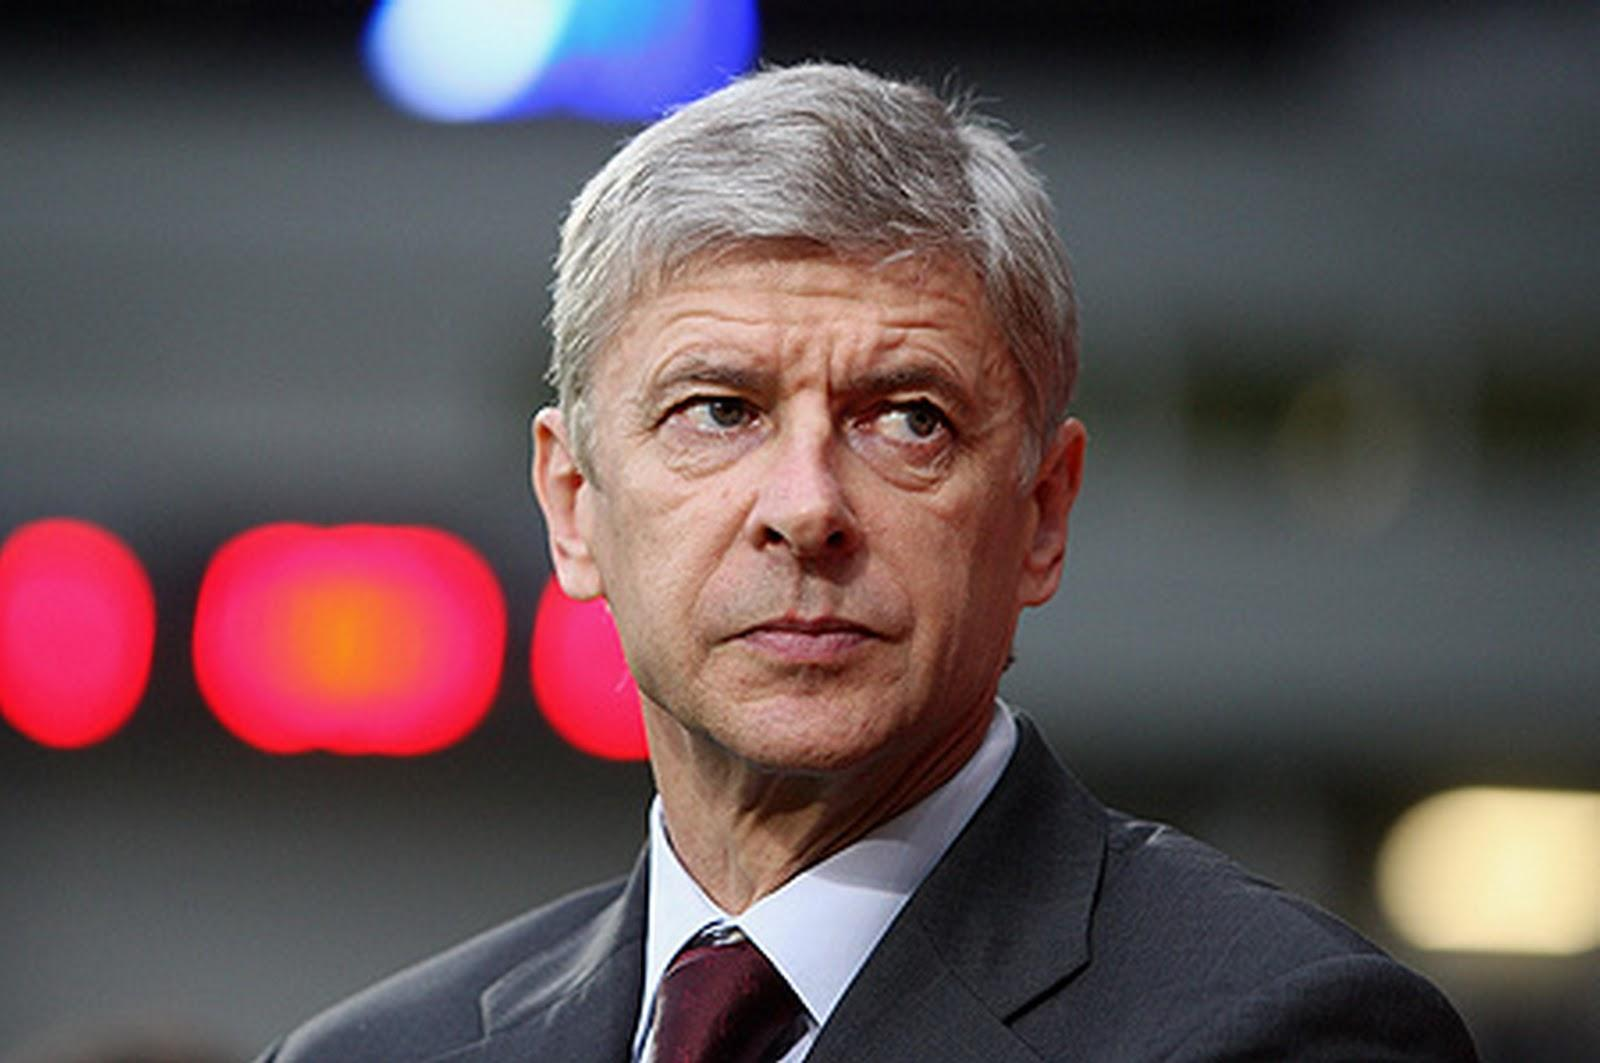 What is Wenger's first name